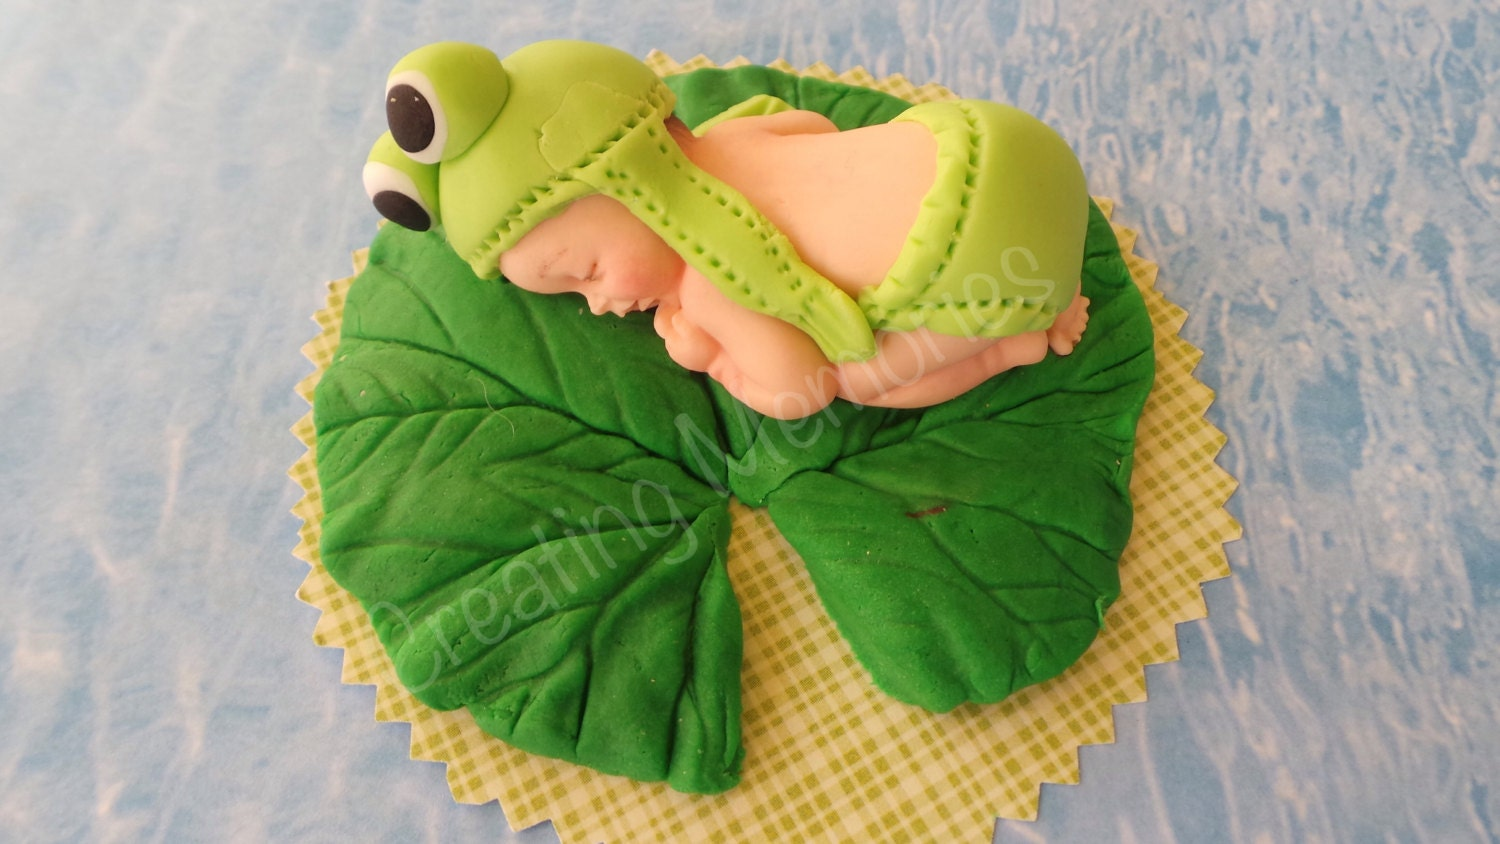 Edible Cake Decorations Baby Boy : BABY FROG Edible Cake decorations for BABY boy or girl baby